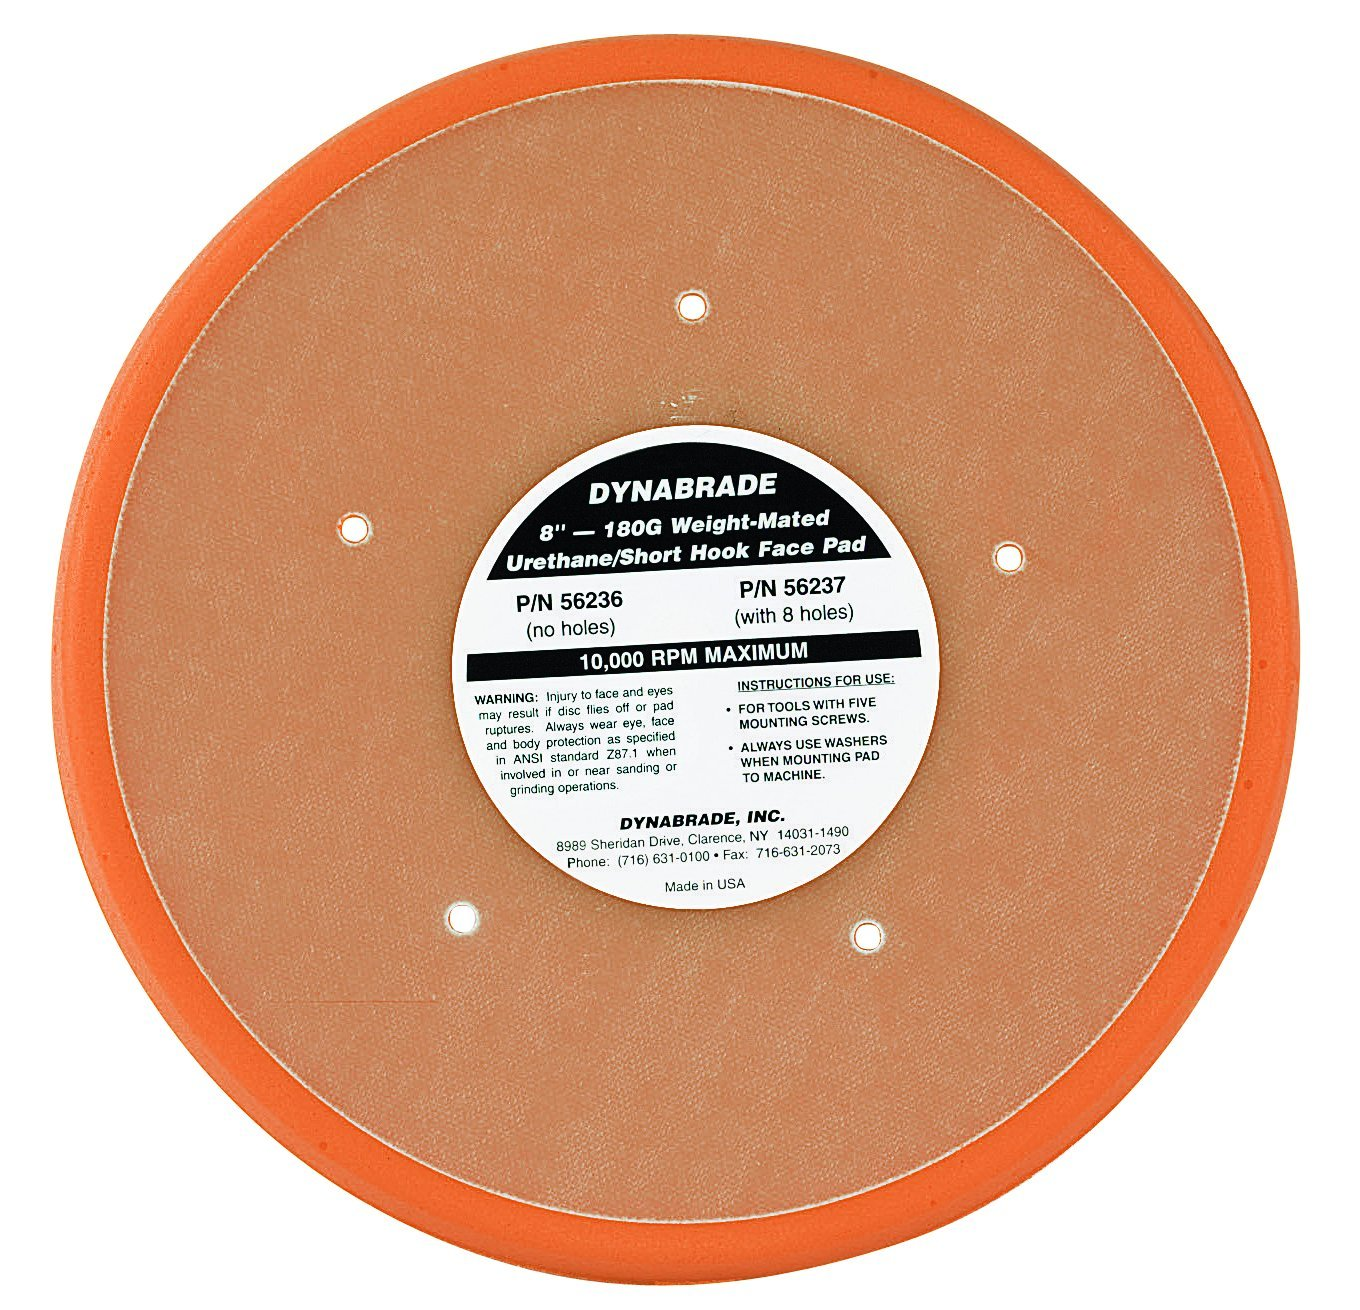 Dynabrade 56236 Non-Vacuum Disc Pad, 8-Inch Diameter by Dynabrade